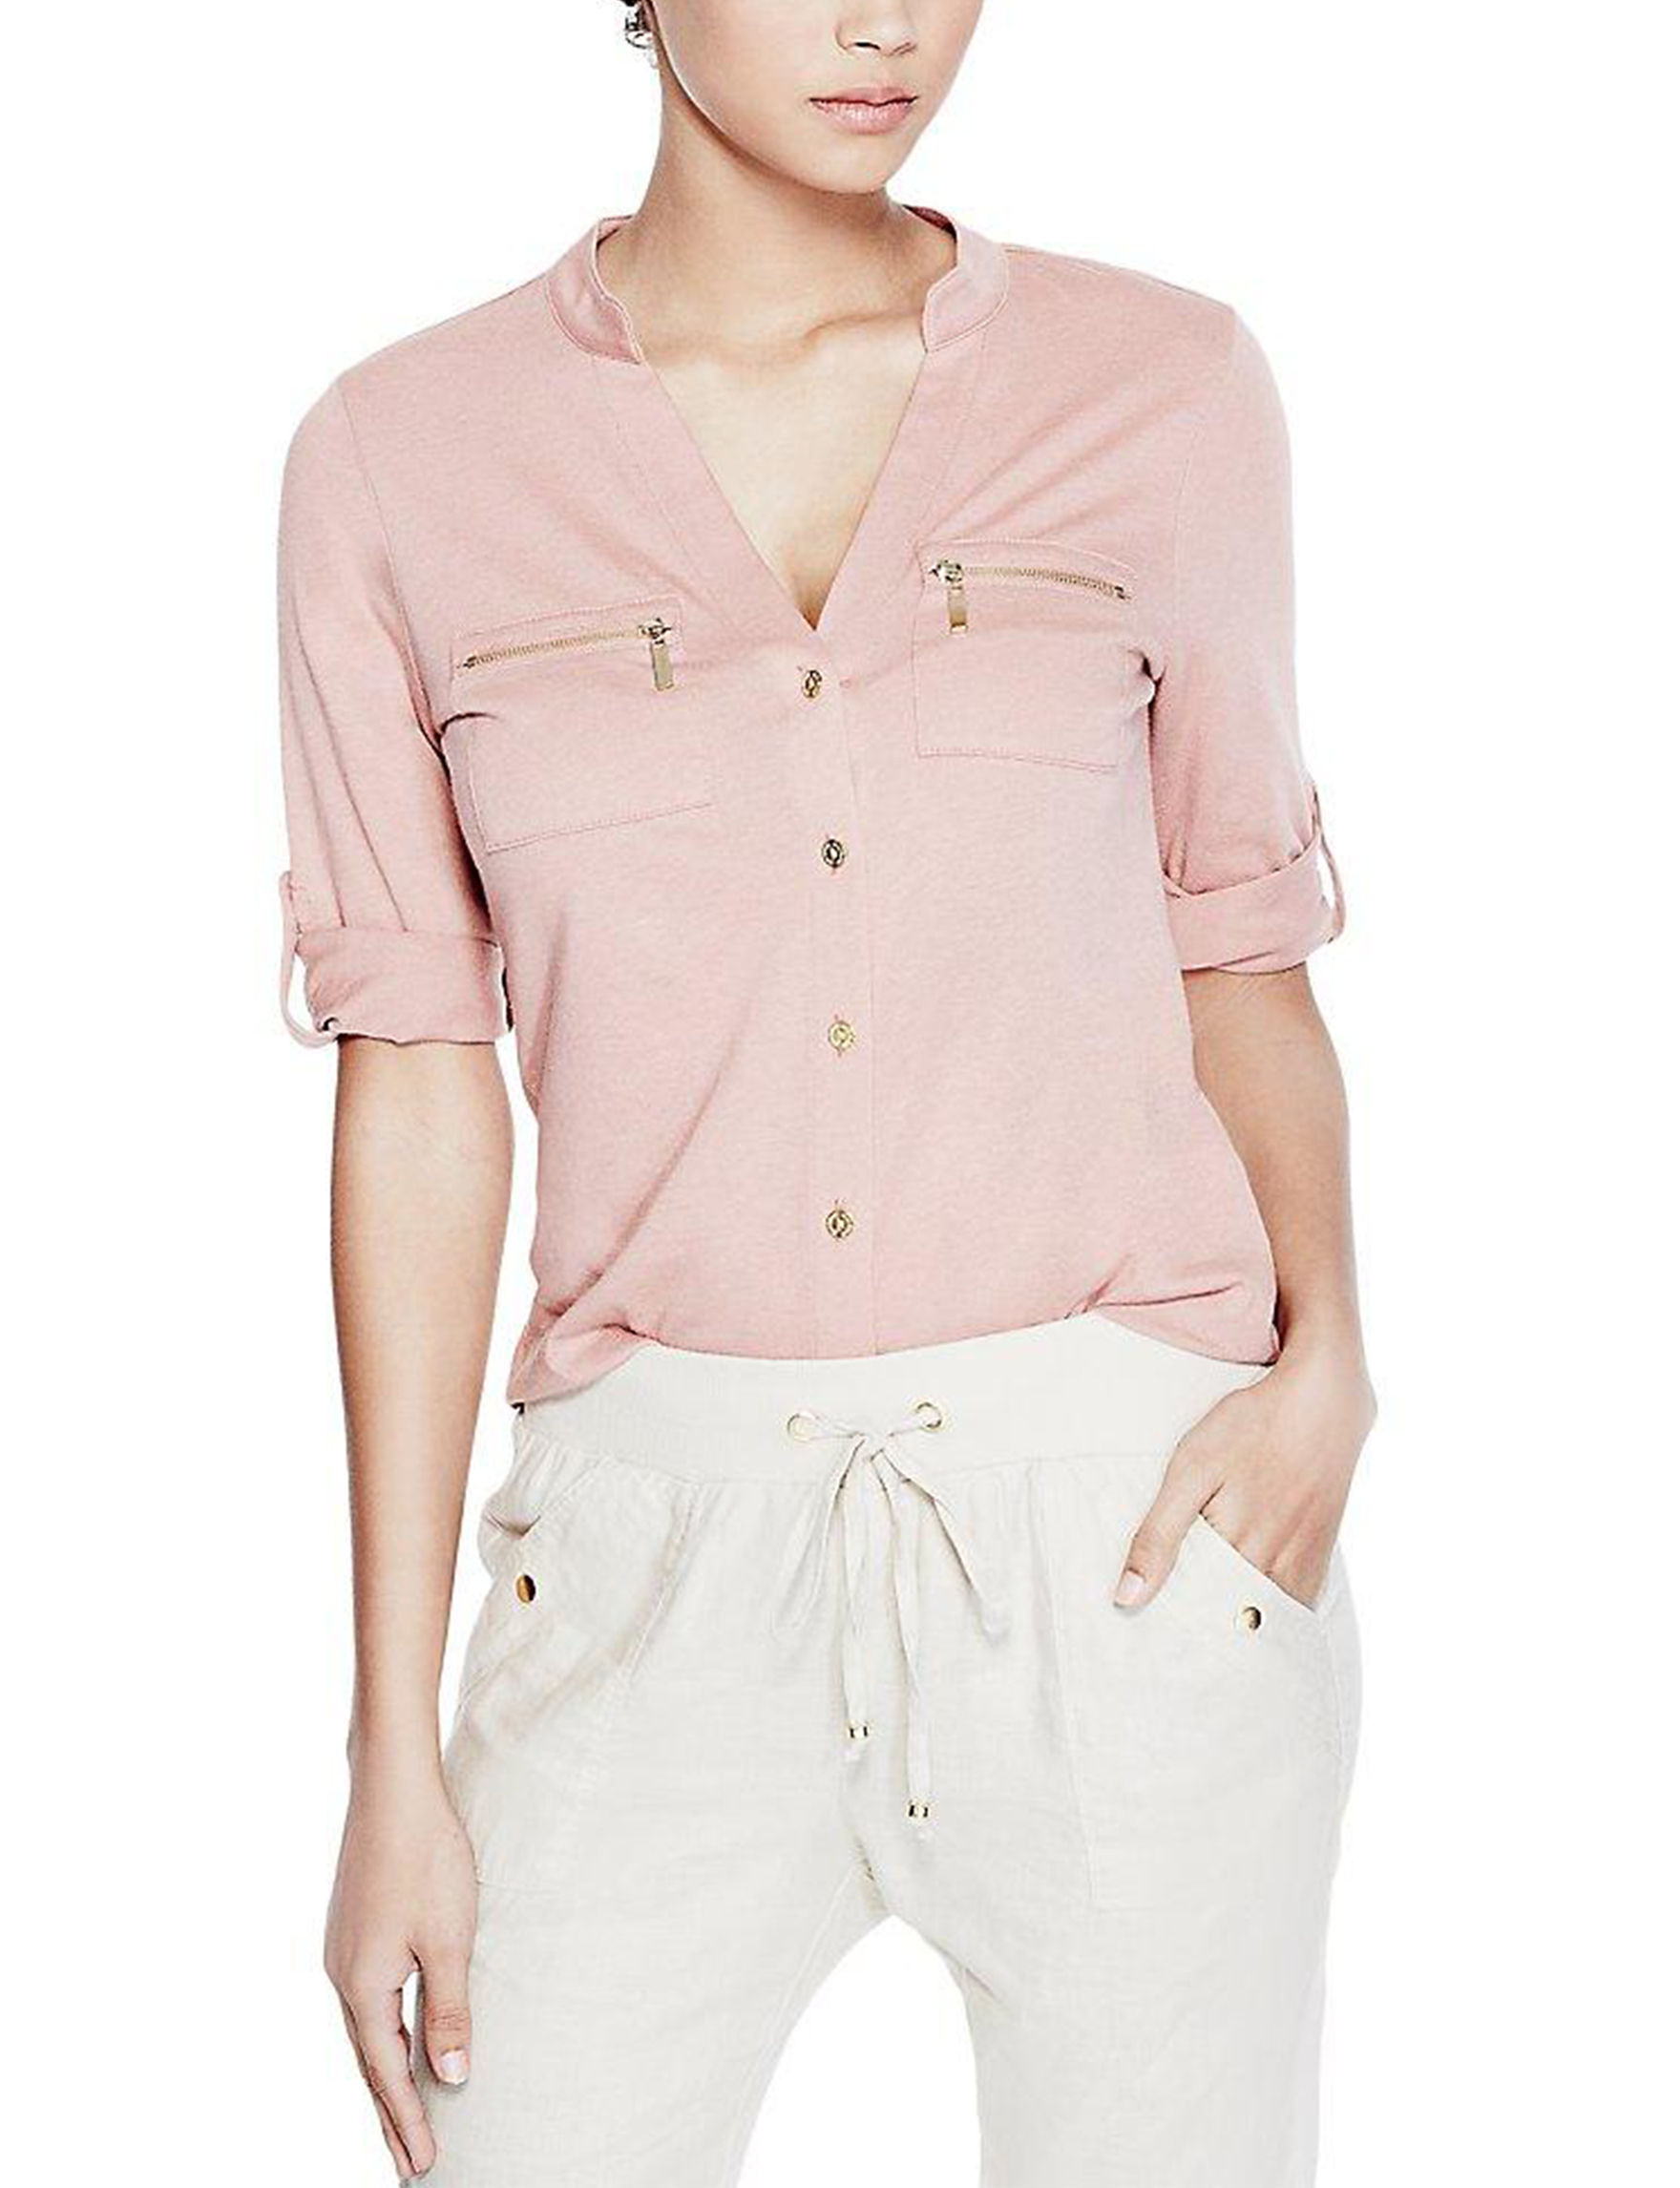 G by Guess Light Pink Shirts & Blouses